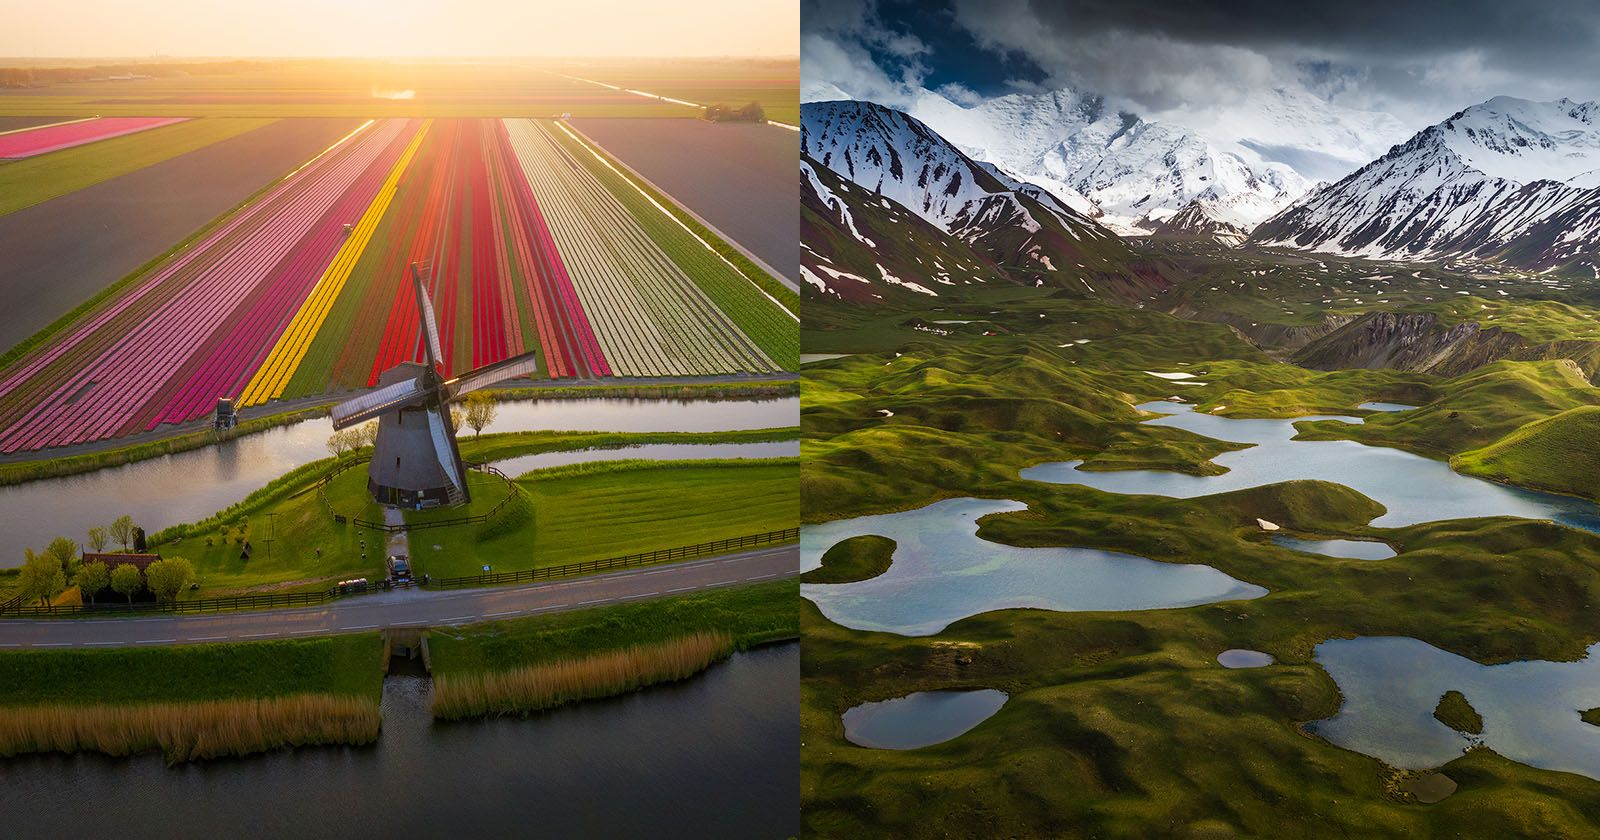 10 Tips for Shooting Epic Drone Photos